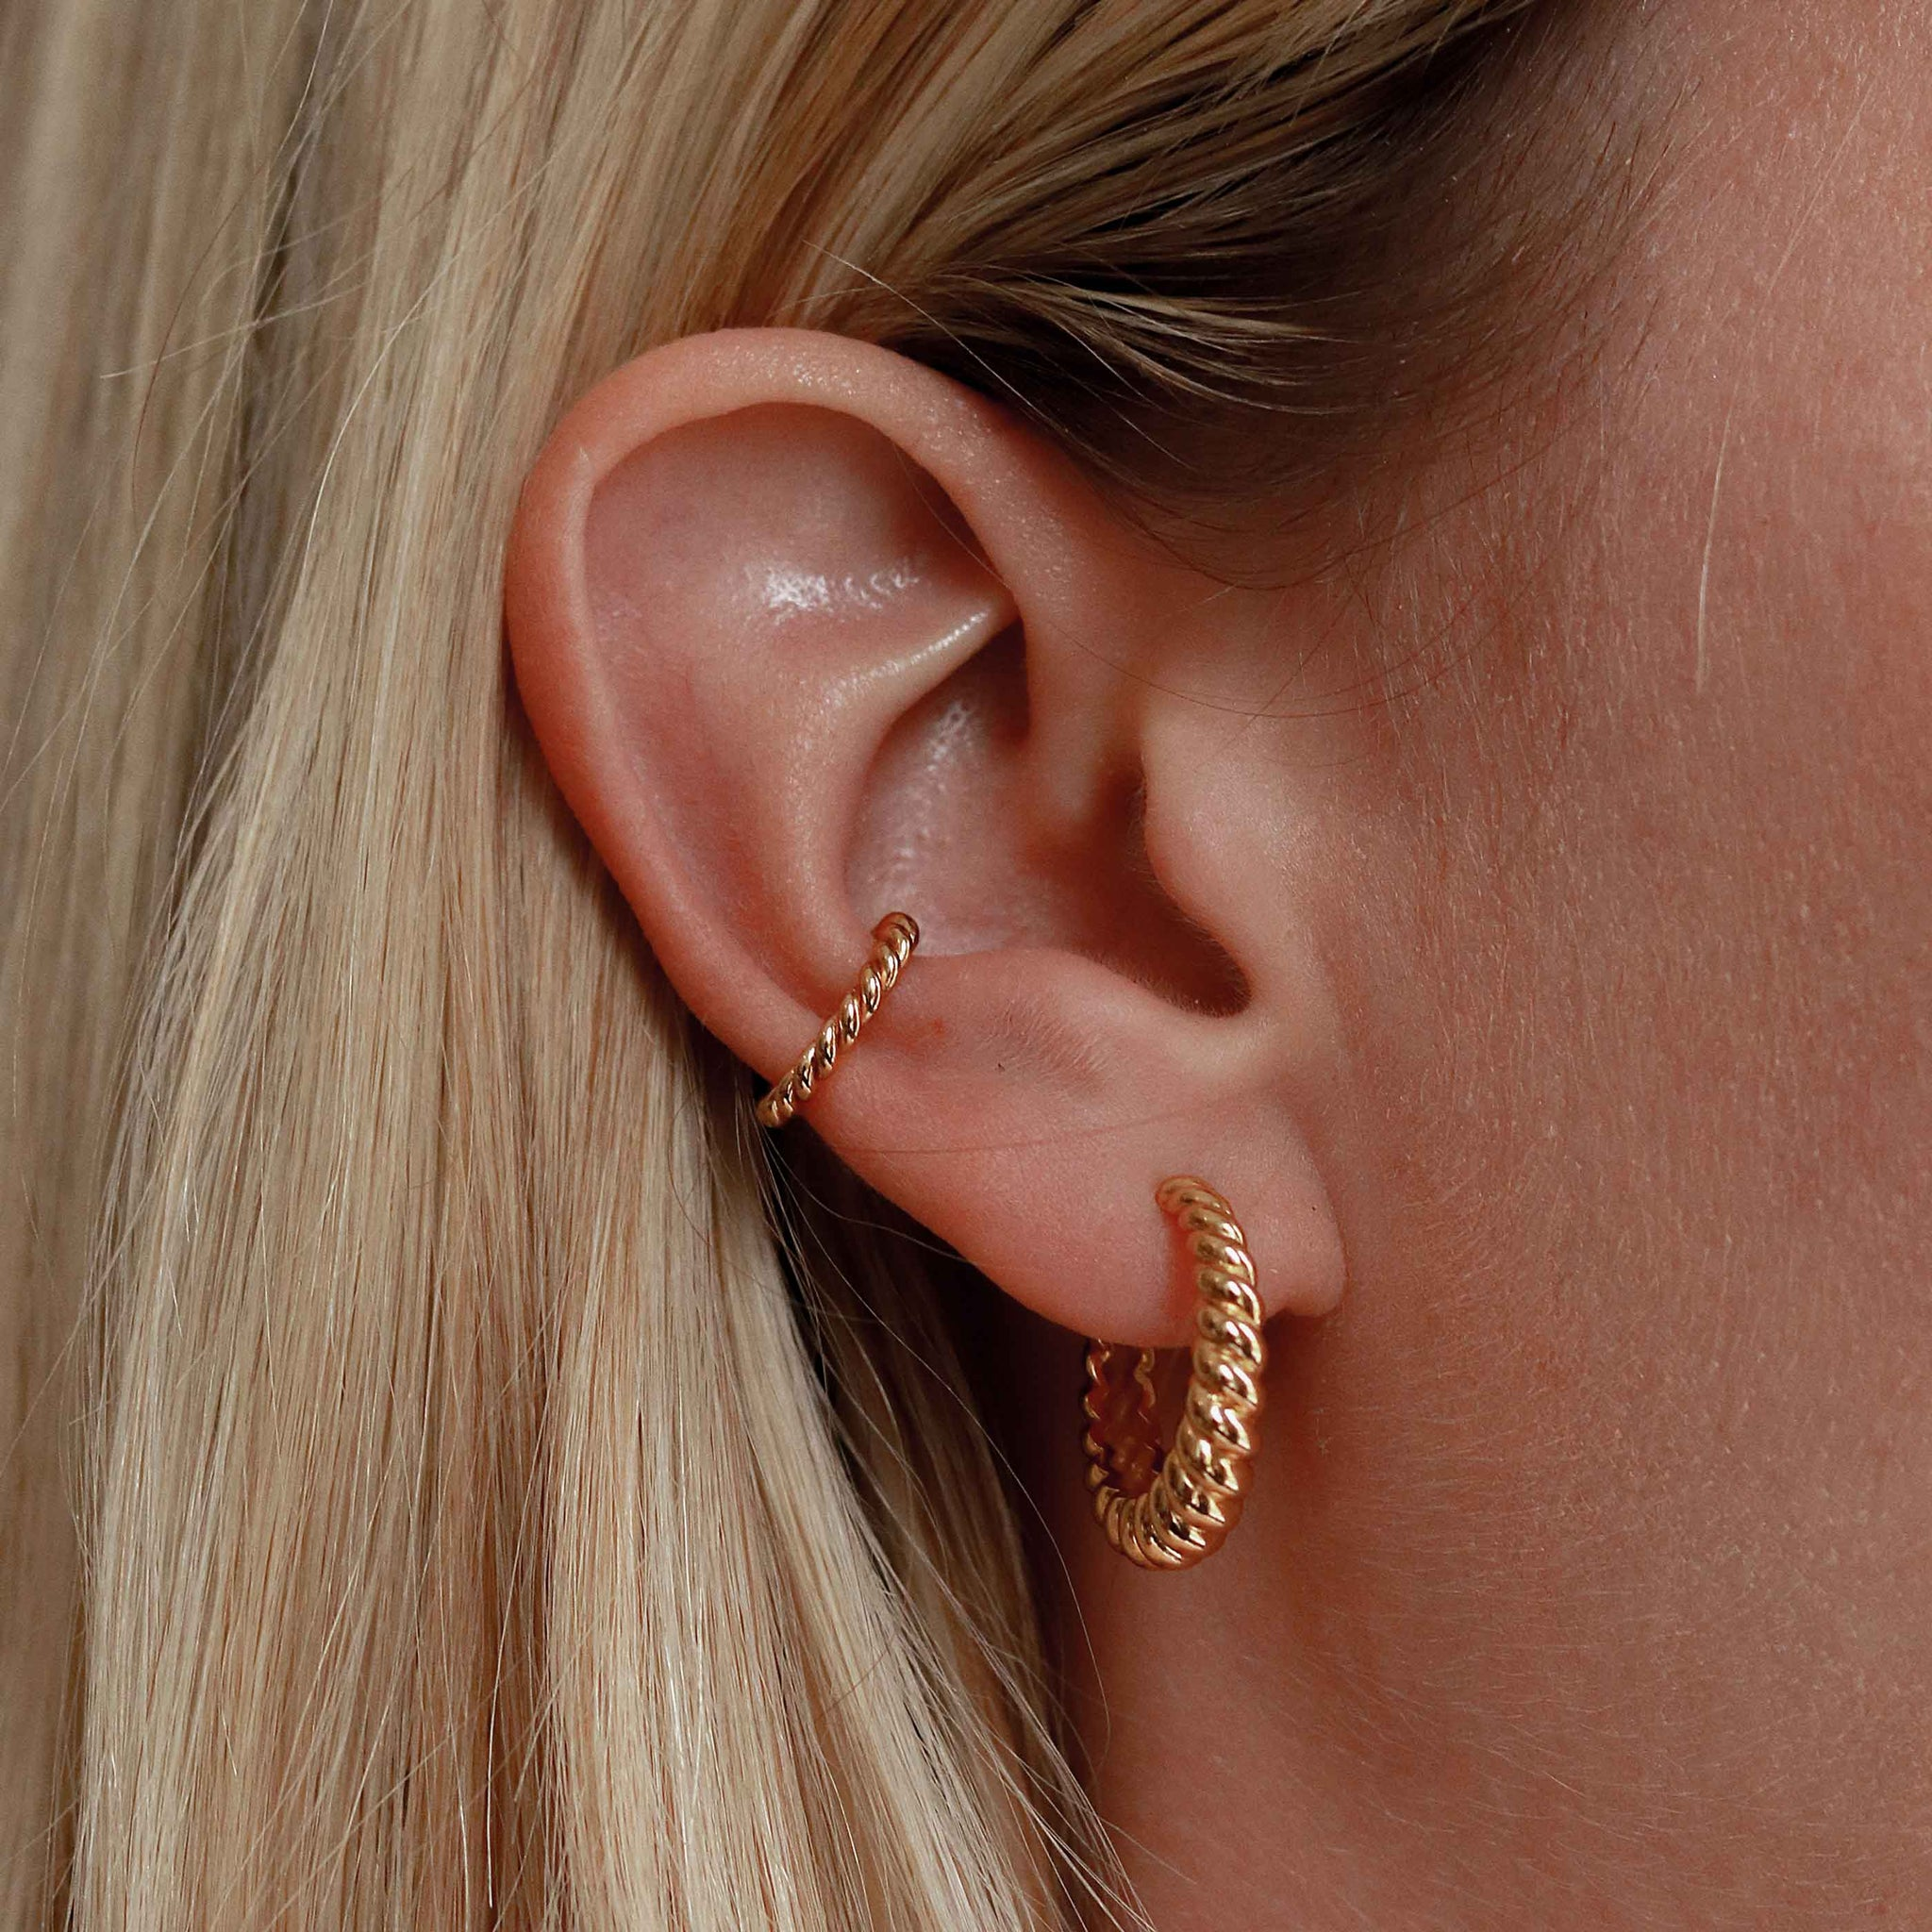 Rope Ear Cuff in Gold worn with rope hoops